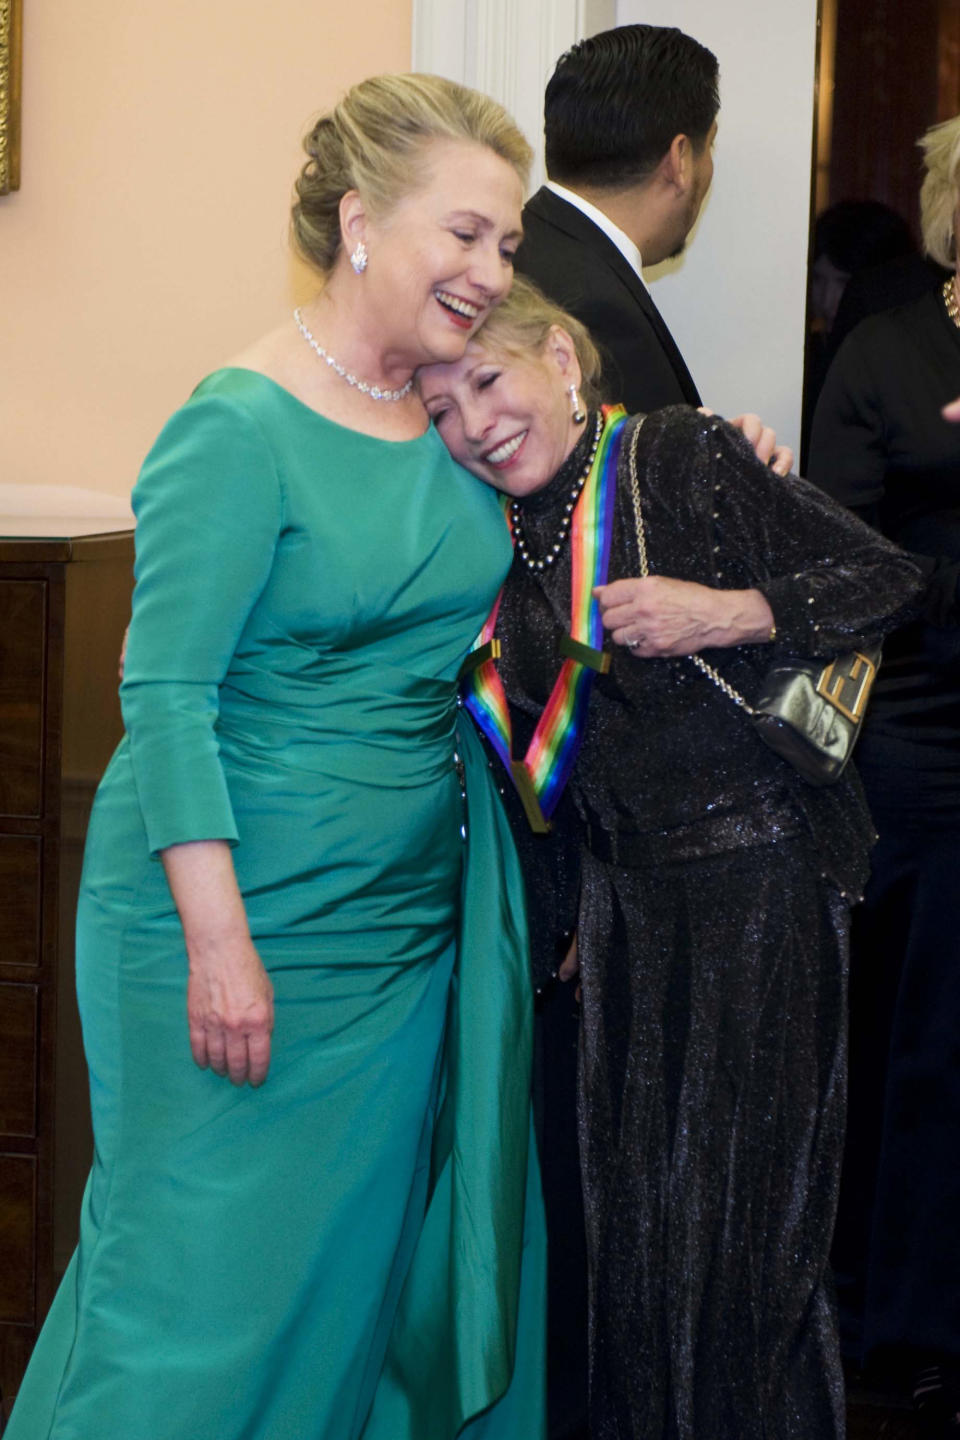 Secretary of State Hillary Rodham Clinton, left, hugs 2012 Kennedy Center Honoree Natalia Makarova at the end of the State Department Dinner for the Kennedy Center Honors gala Saturday, Dec. 1, 2012 at the State Department in Washington. (AP Photo/Kevin Wolf)